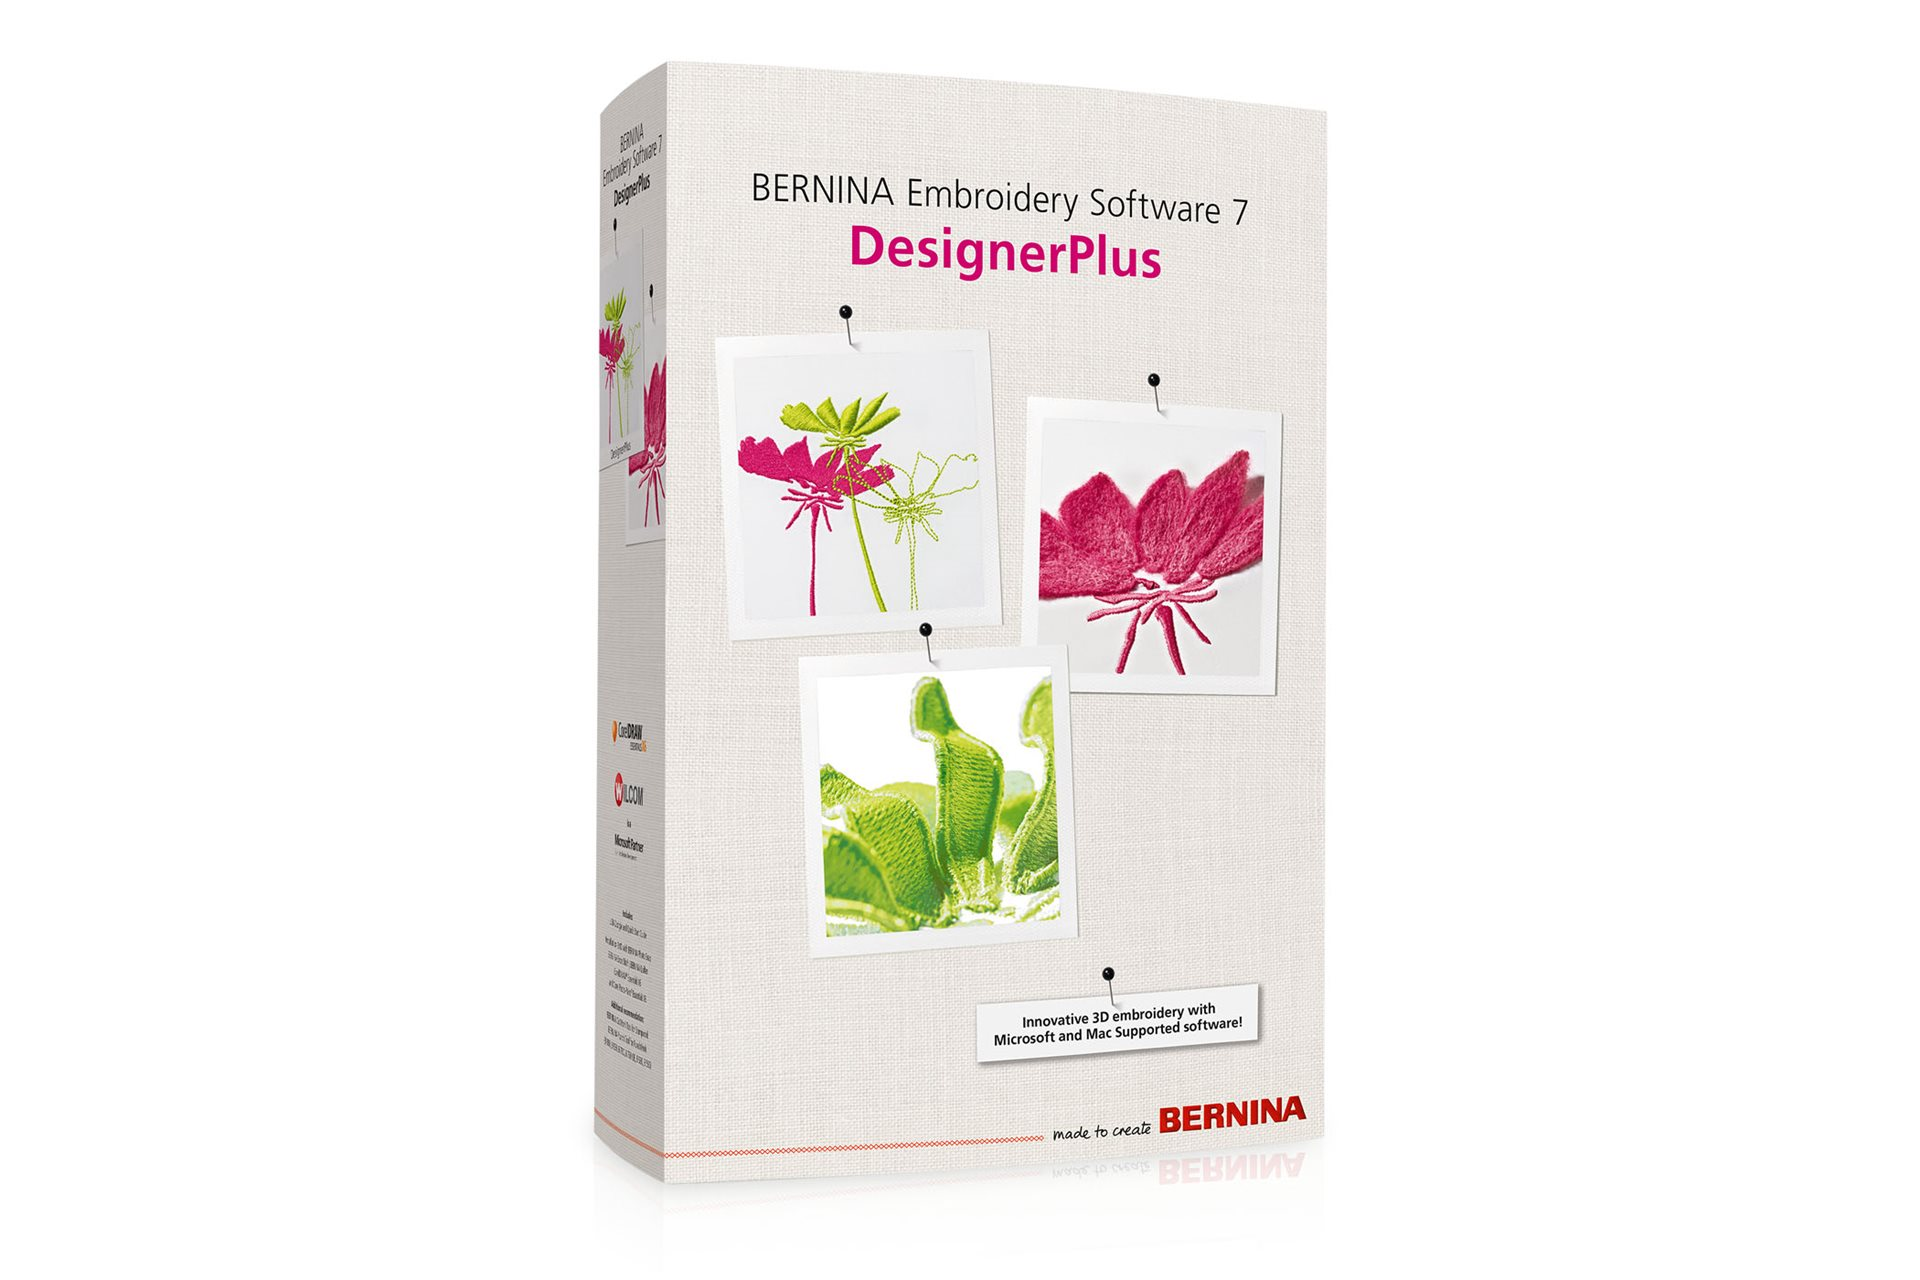 BERNINA Sticksoftware Version 7 – DesignerPlus